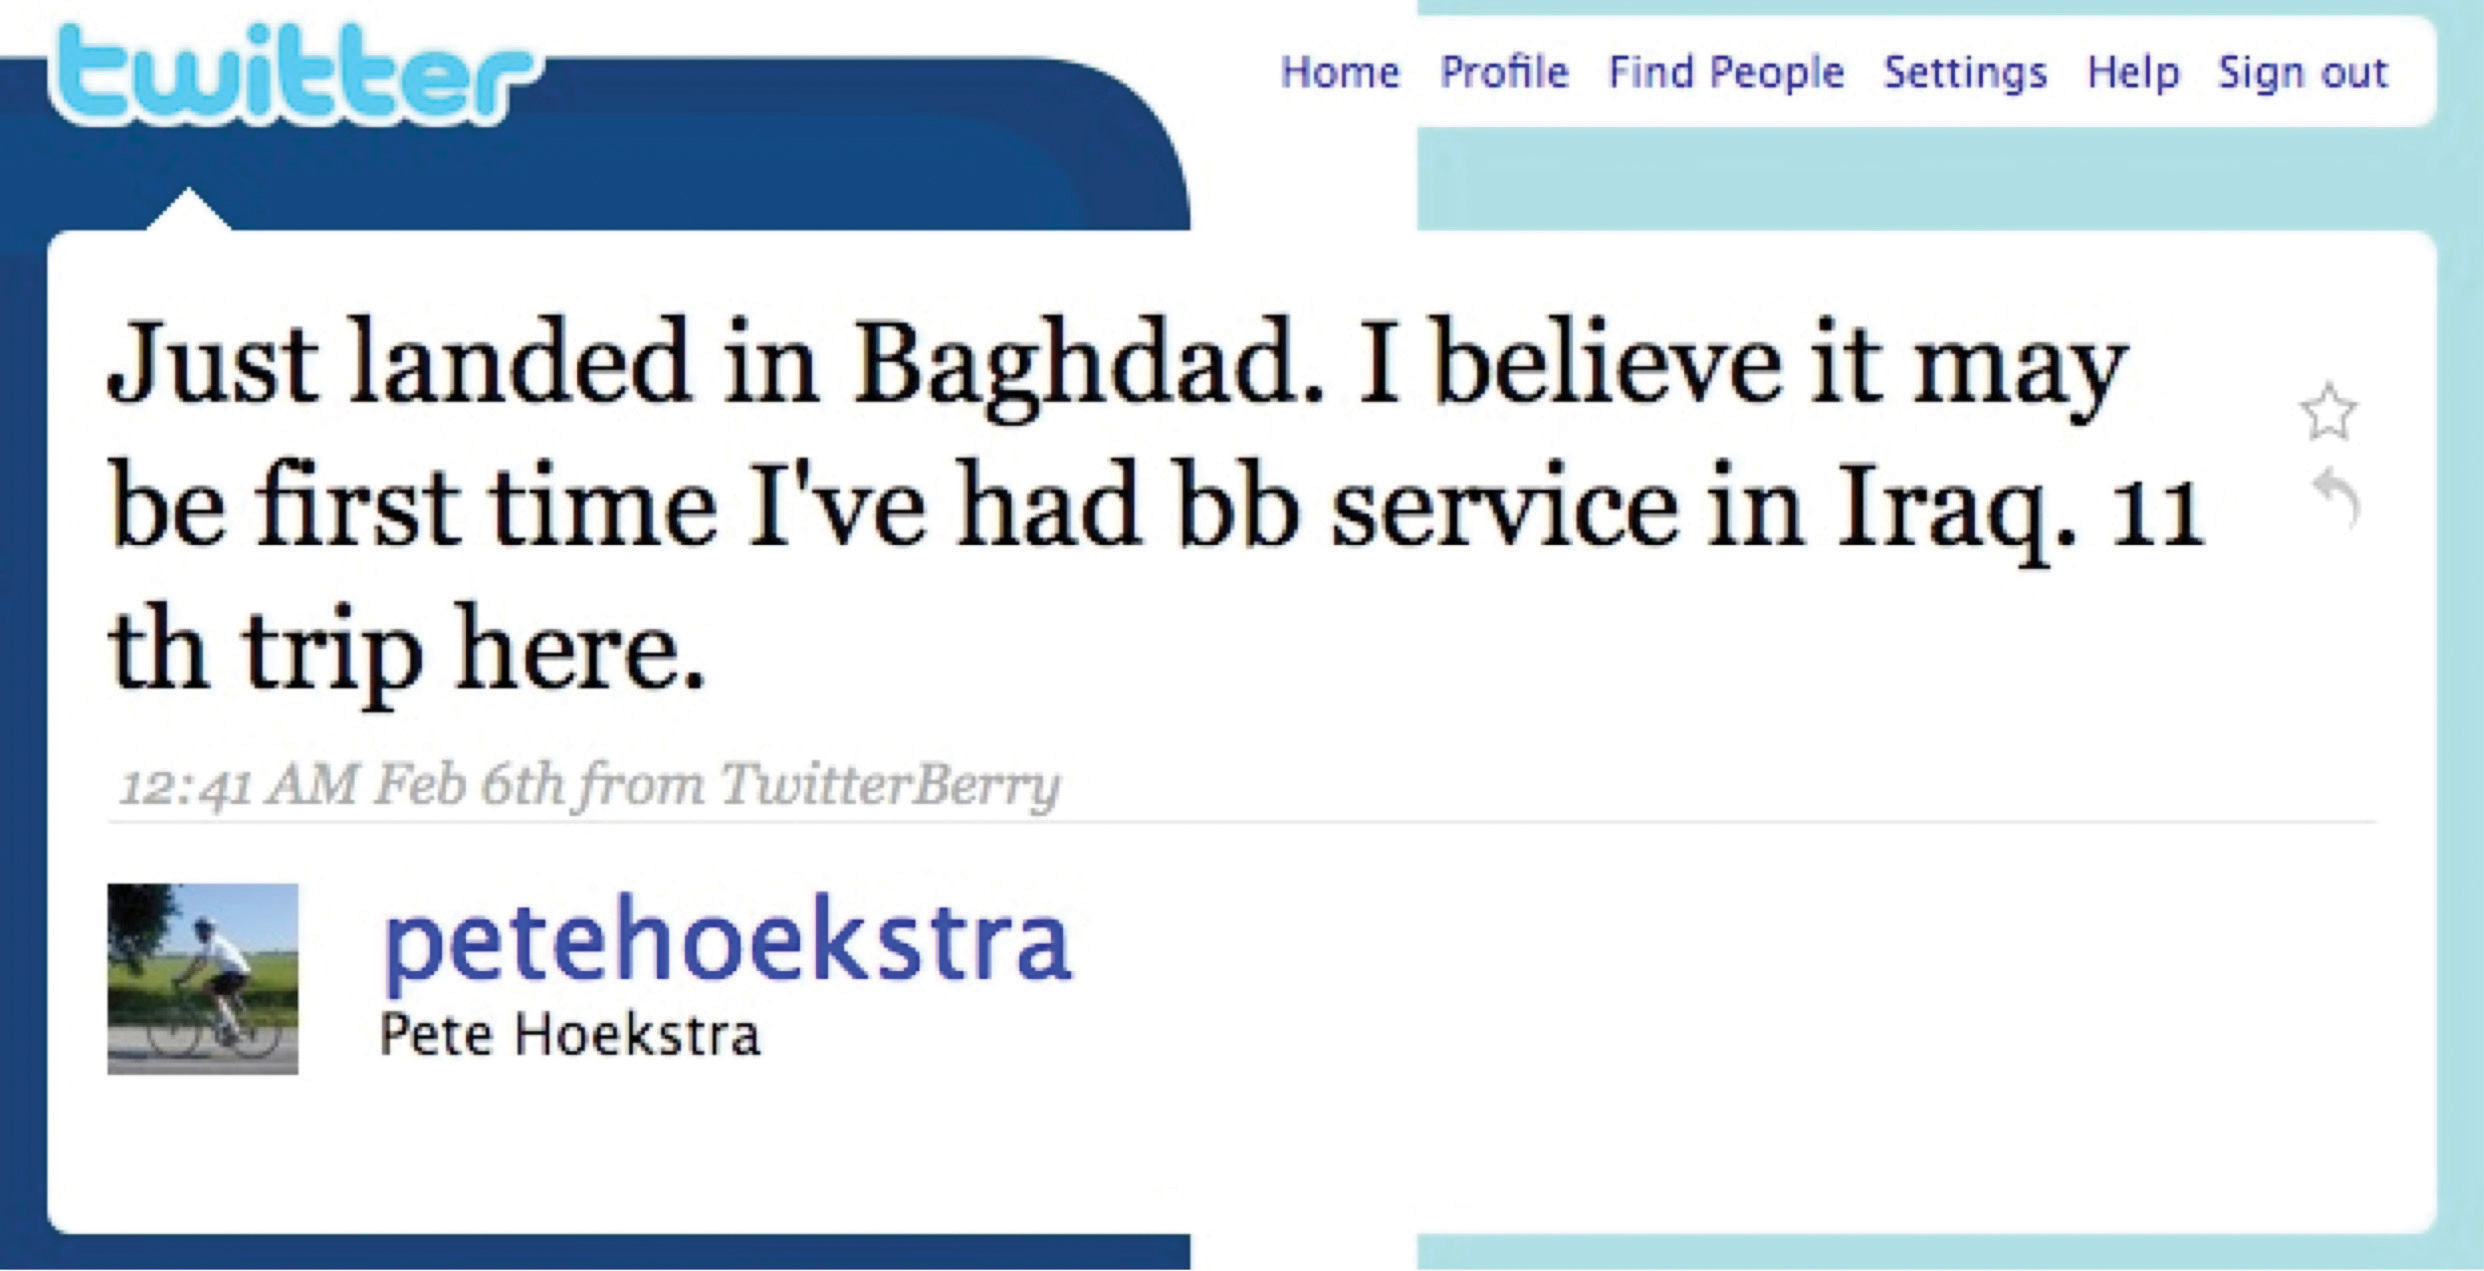 A member of the House Intelligence Committee uses Twitter and reveals his locale on a secret trip. Pete Hoekstra: